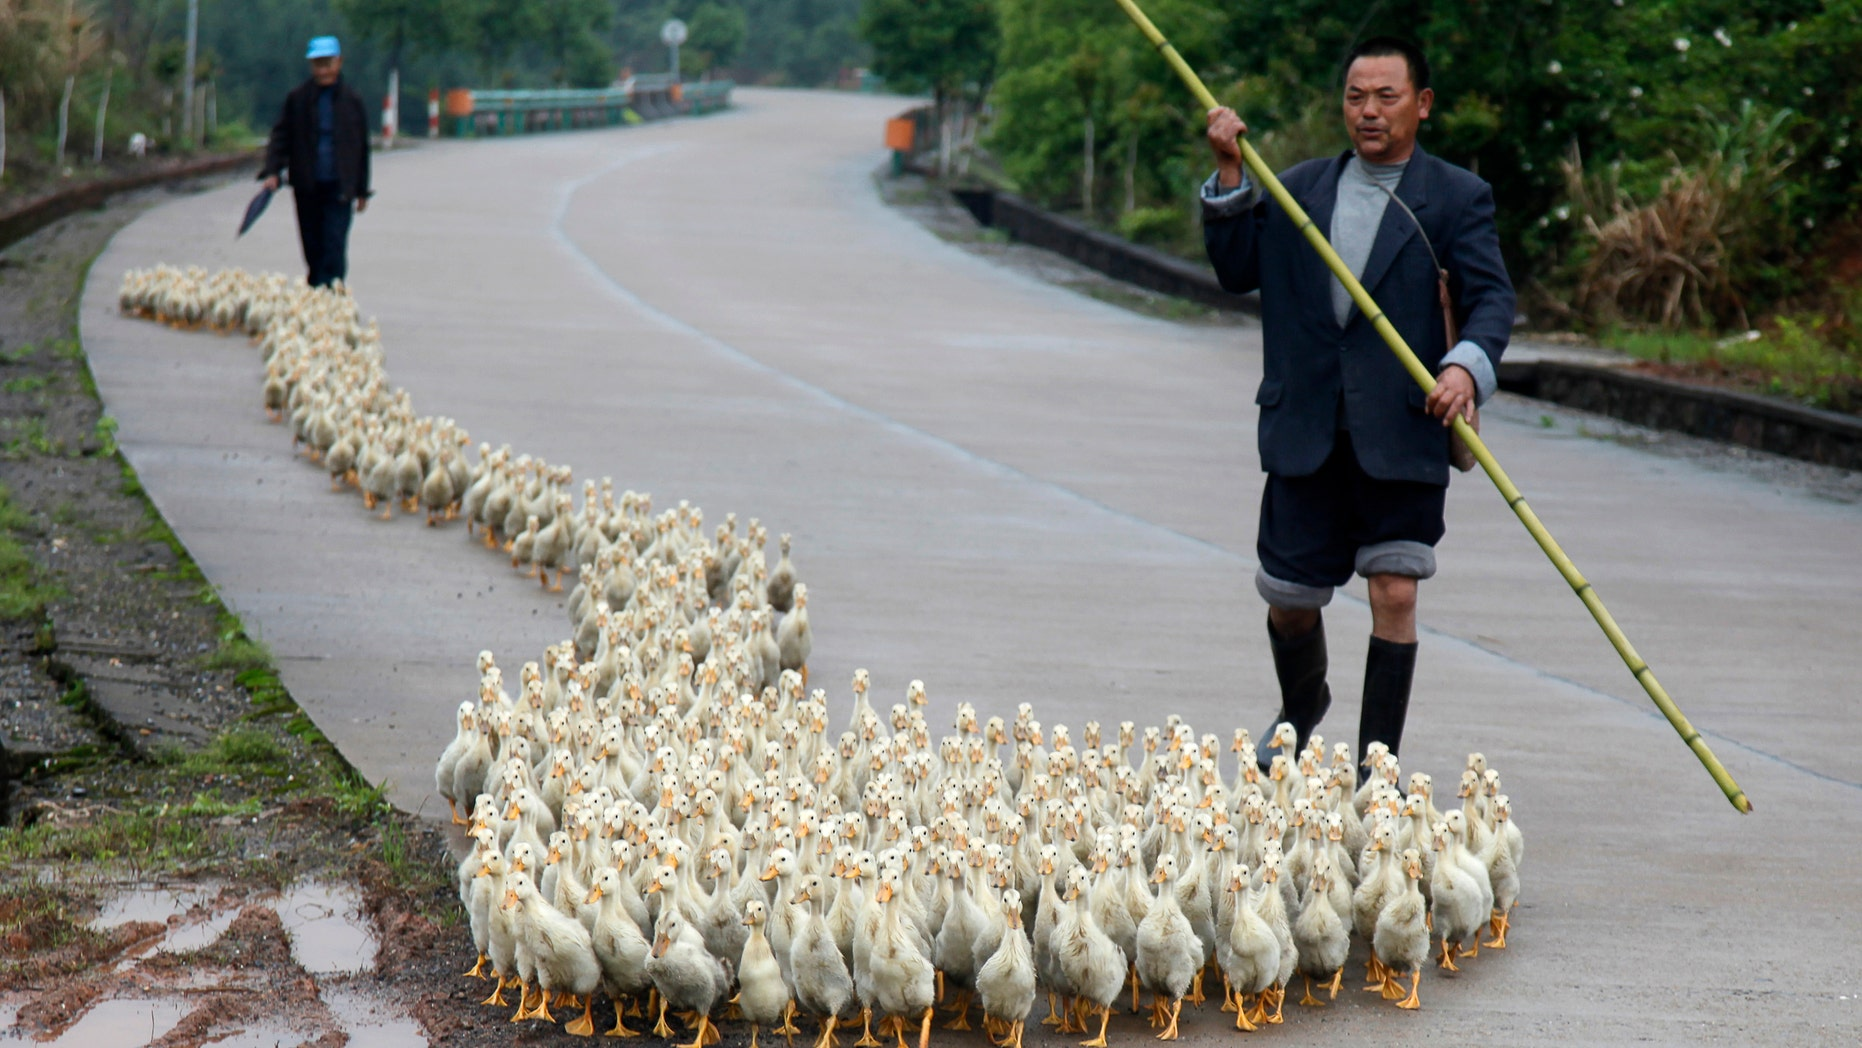 A breeder, whose business has been affected by the H7N9 bird flu virus, walks his ducks along a road in Changzhou county, Shandong province.